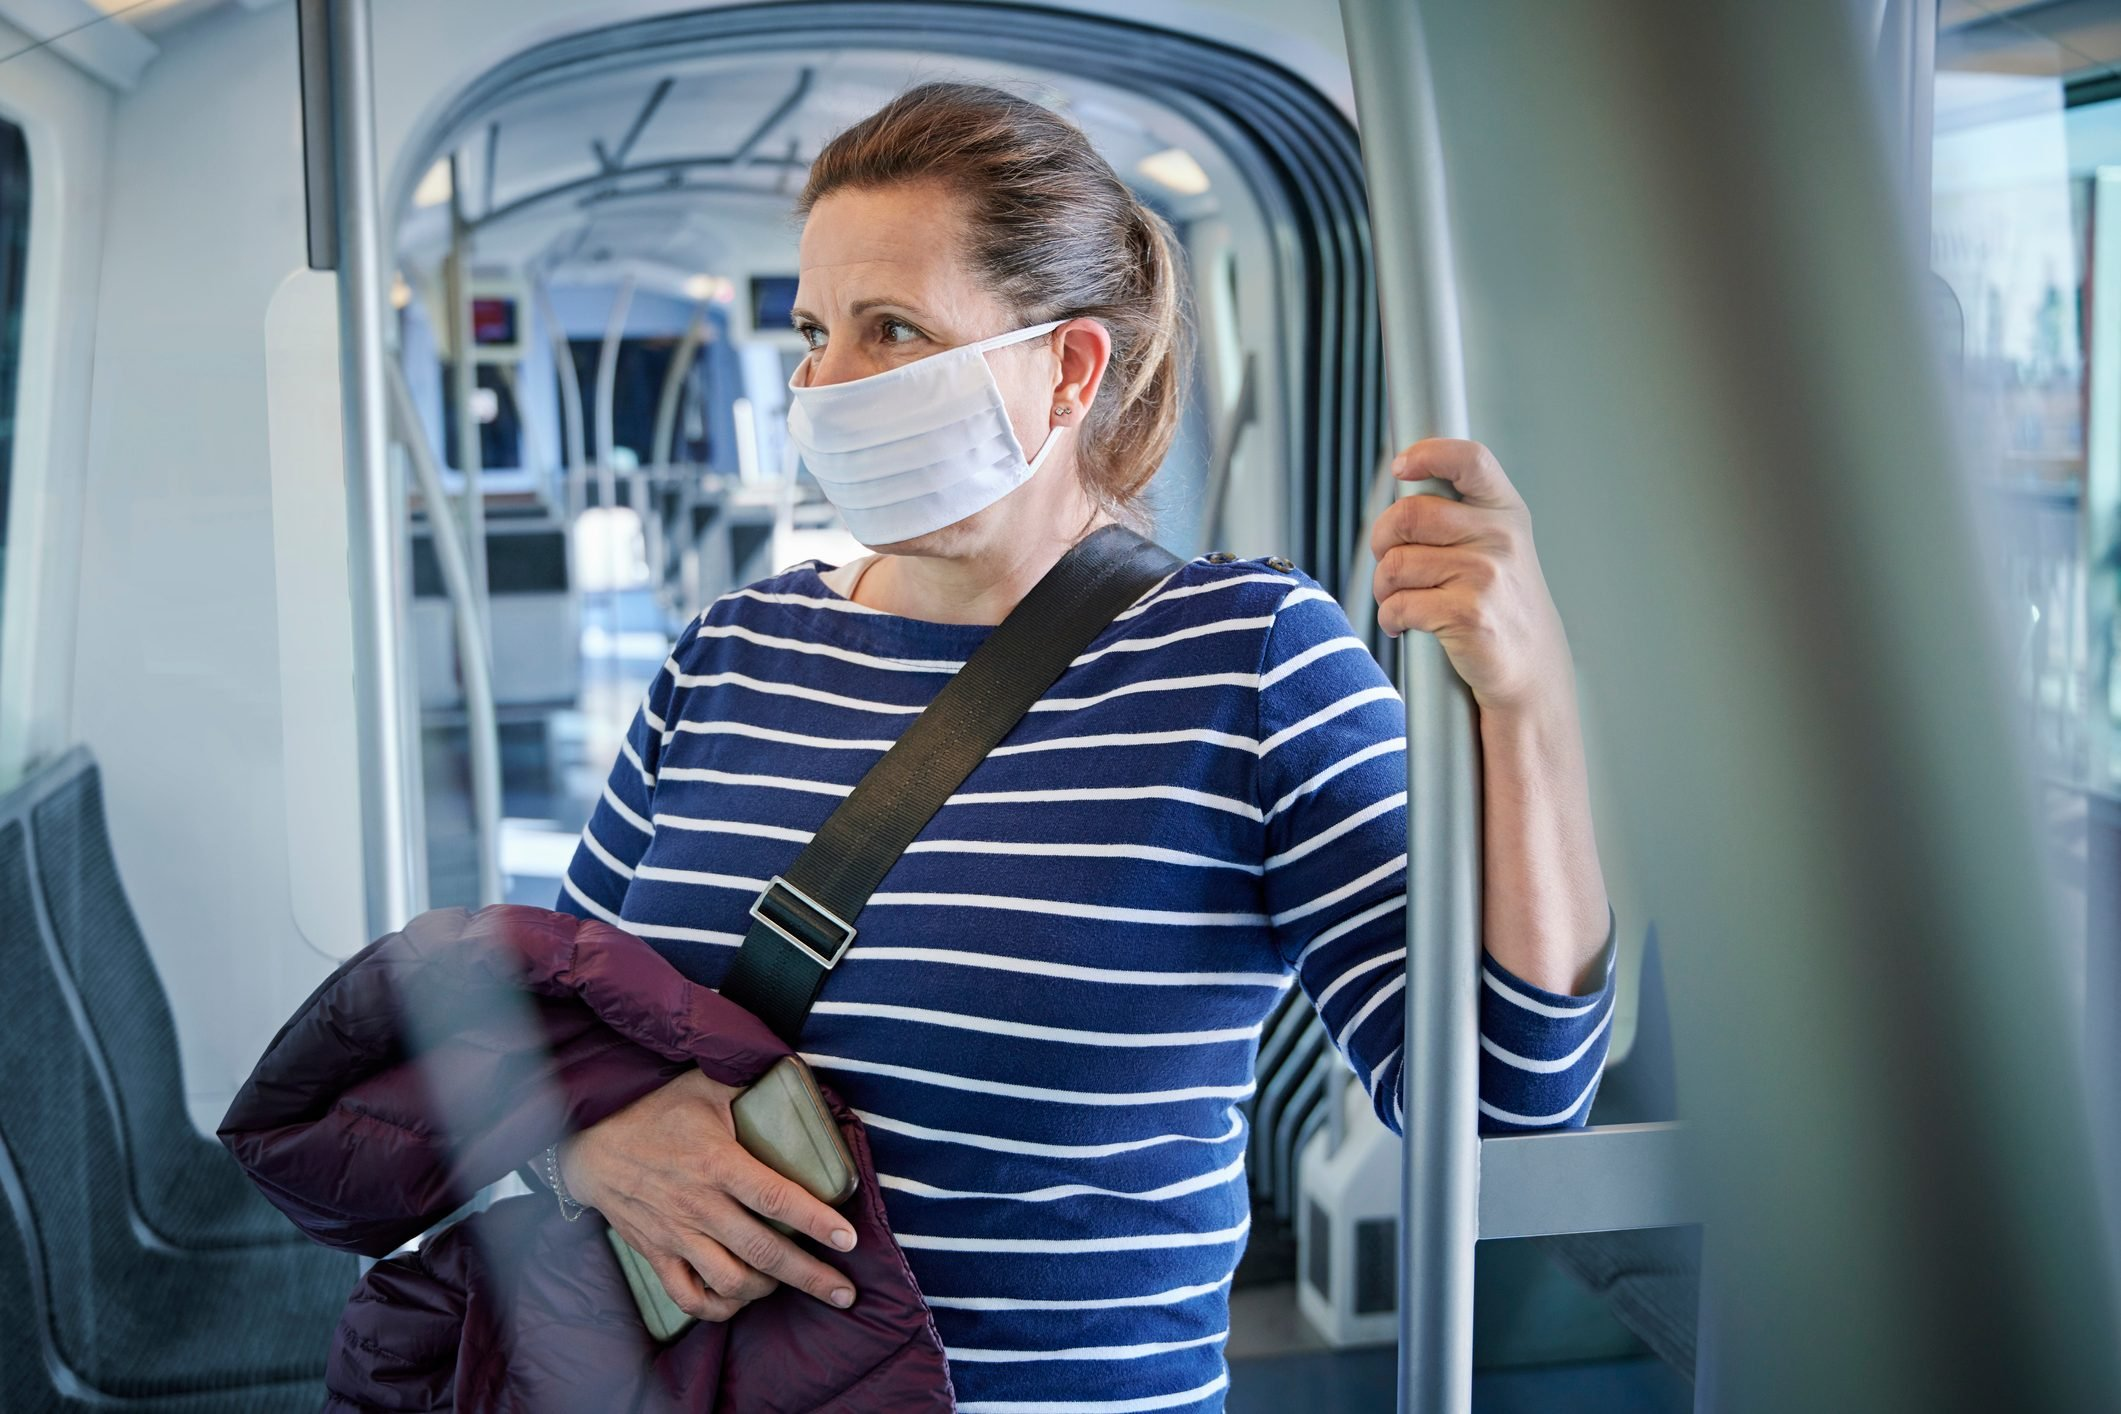 Mature woman wearing protective mask on train